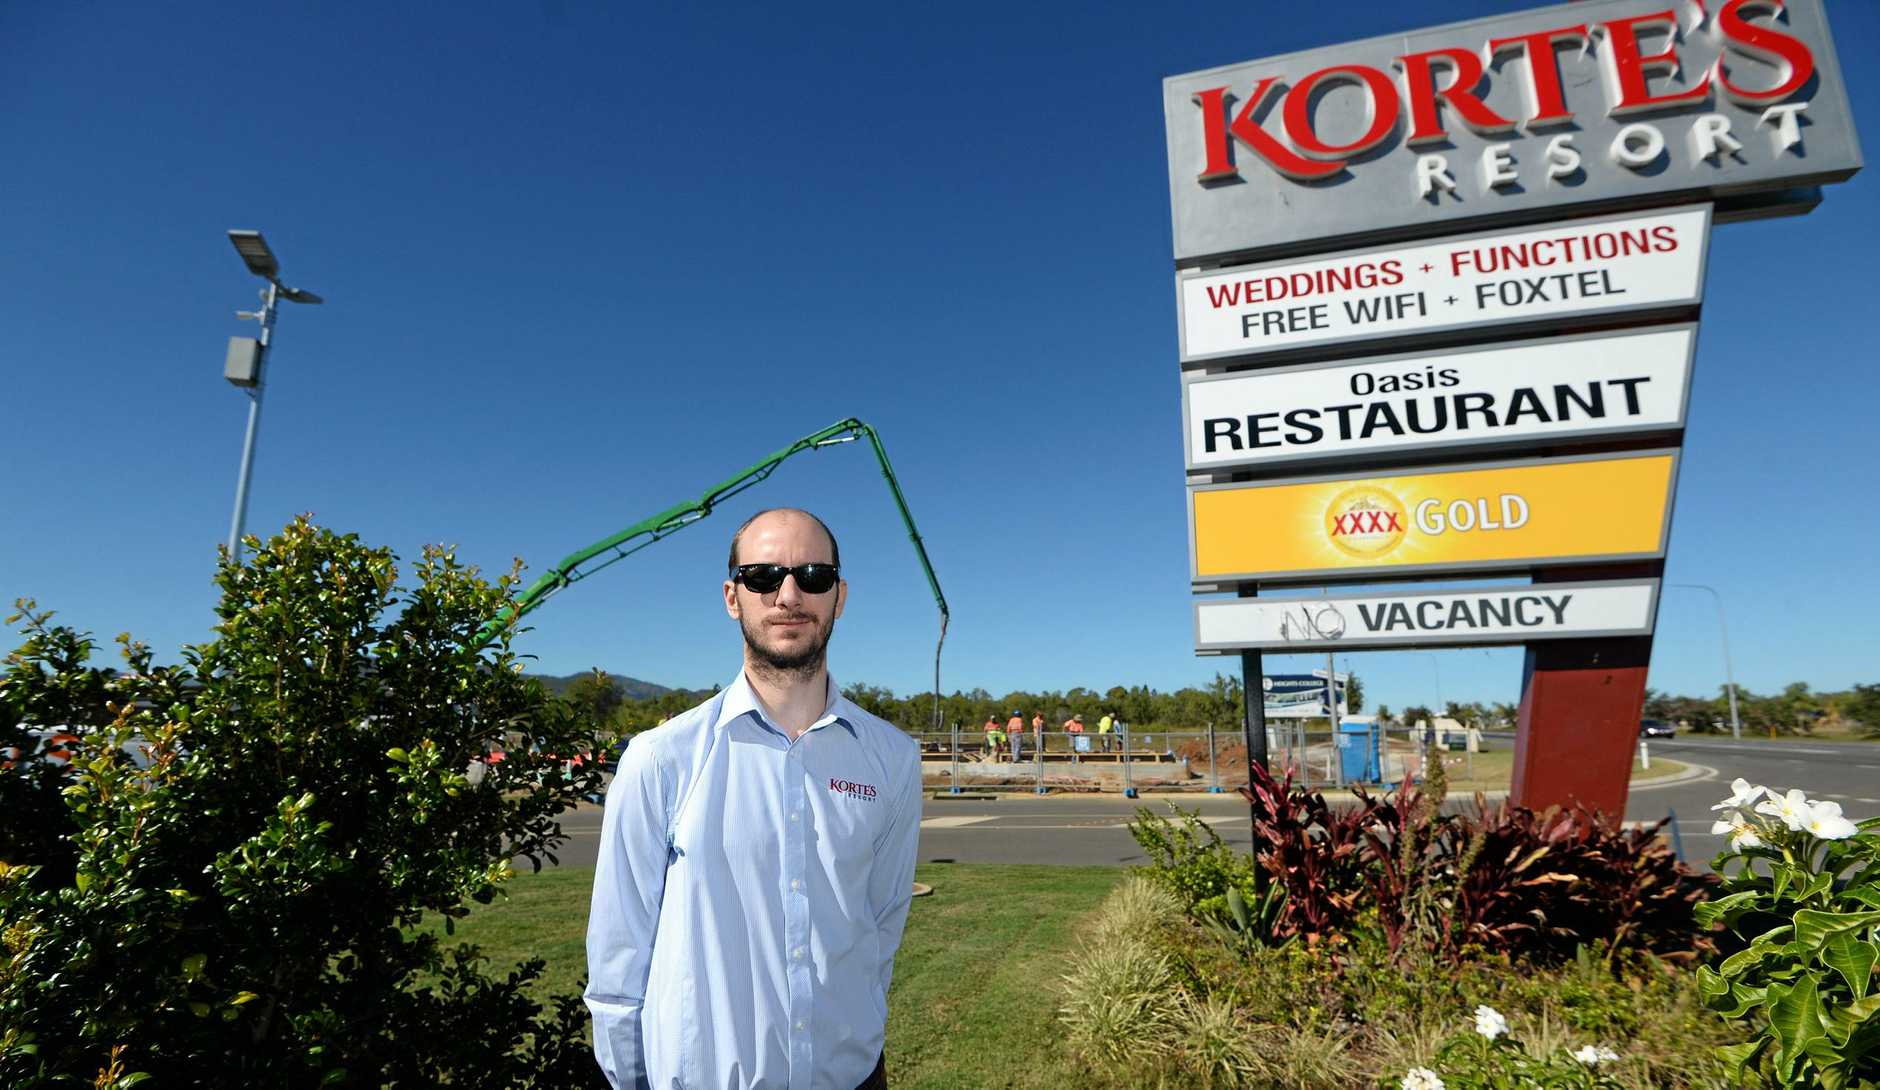 Brad Korte at Korte's Resort in Parkhurst where they are exapanding the site to include a 400 seat function venue.